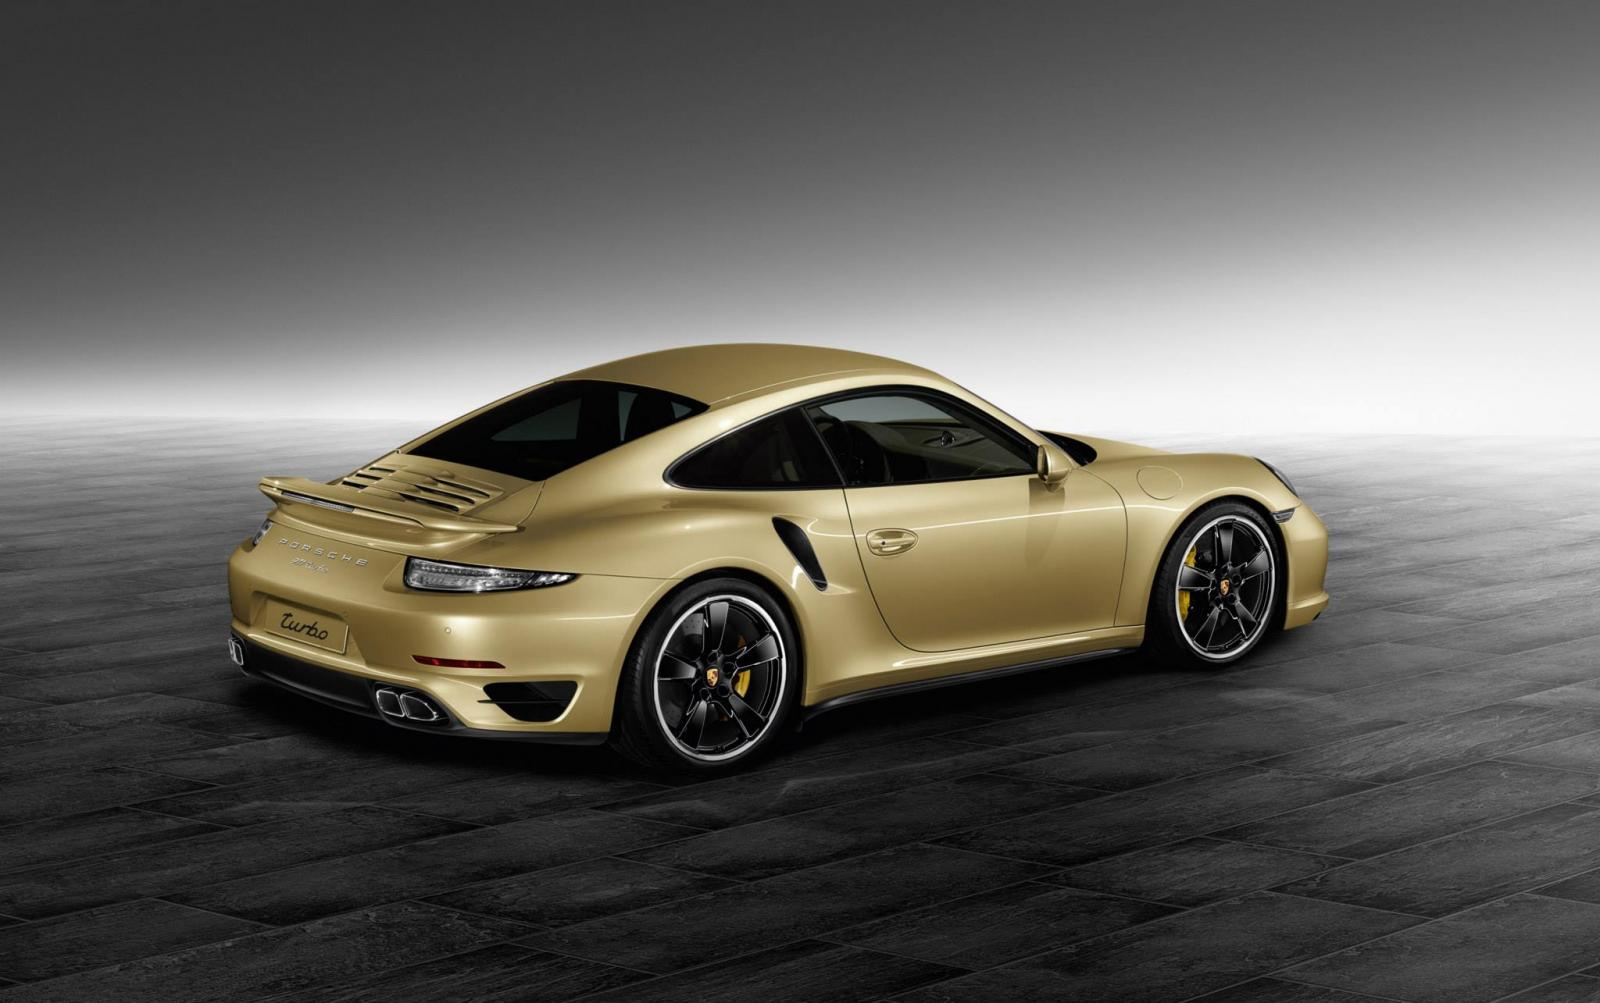 911 Turbo By Porsche Exclusive Puts On Lime Gold Metallic